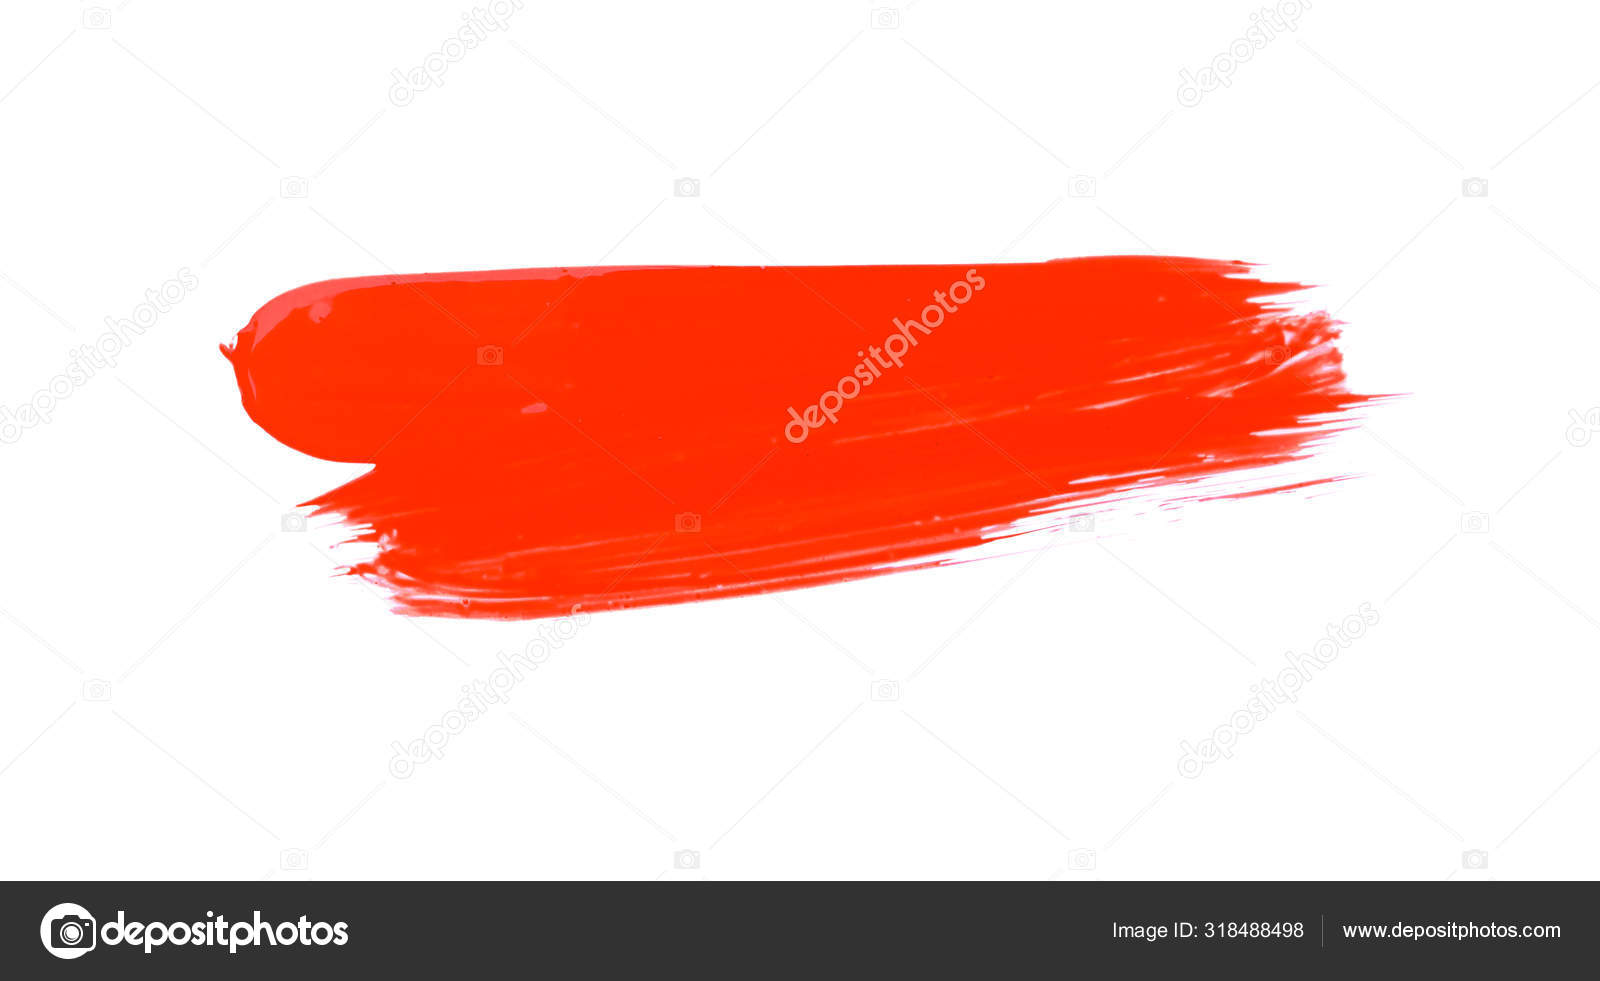 Color Splash 8 Abstract Red Watercolor Backgrounds Abstract Art Watercolor Overlay Cute Background Abstract Backdrop Red Pack Texture